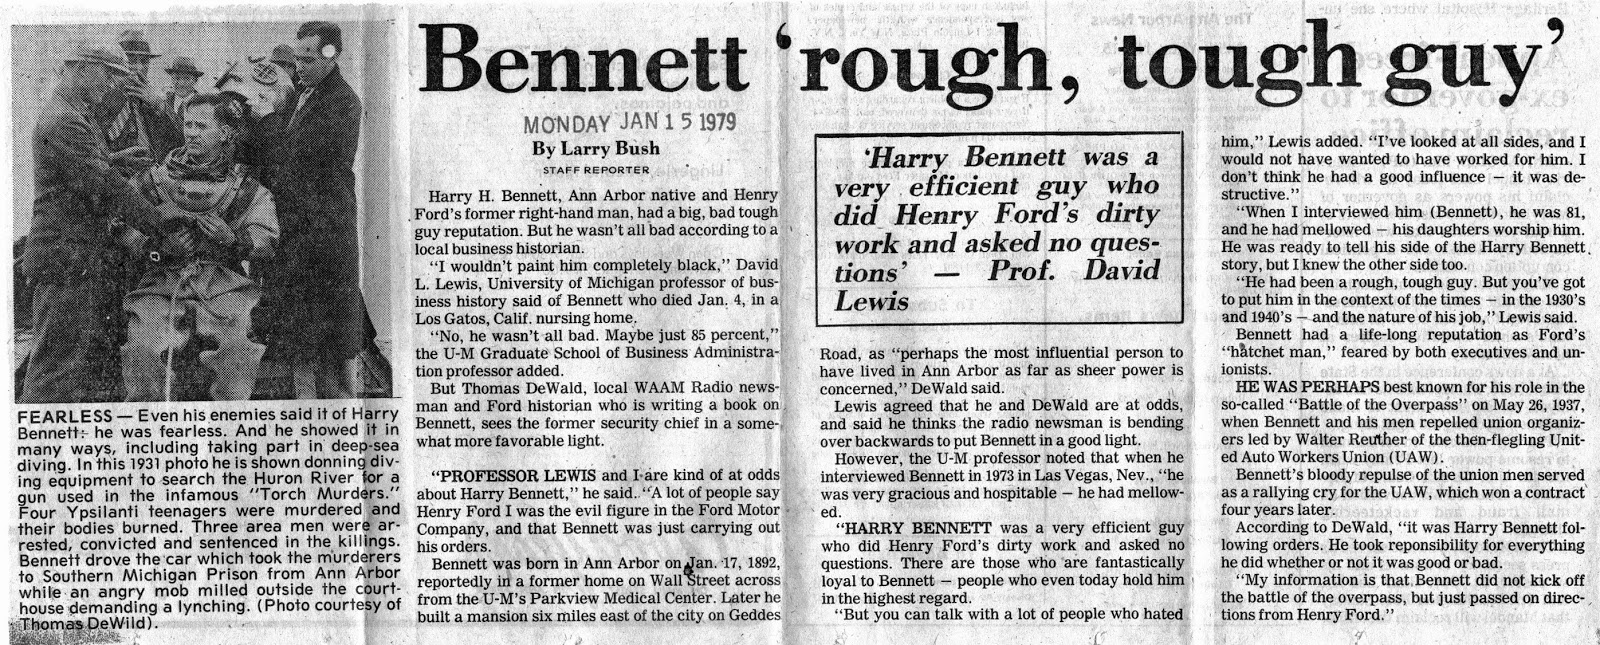 http://www.retrokimmer.com/search/label/HARRY%20BENNETT